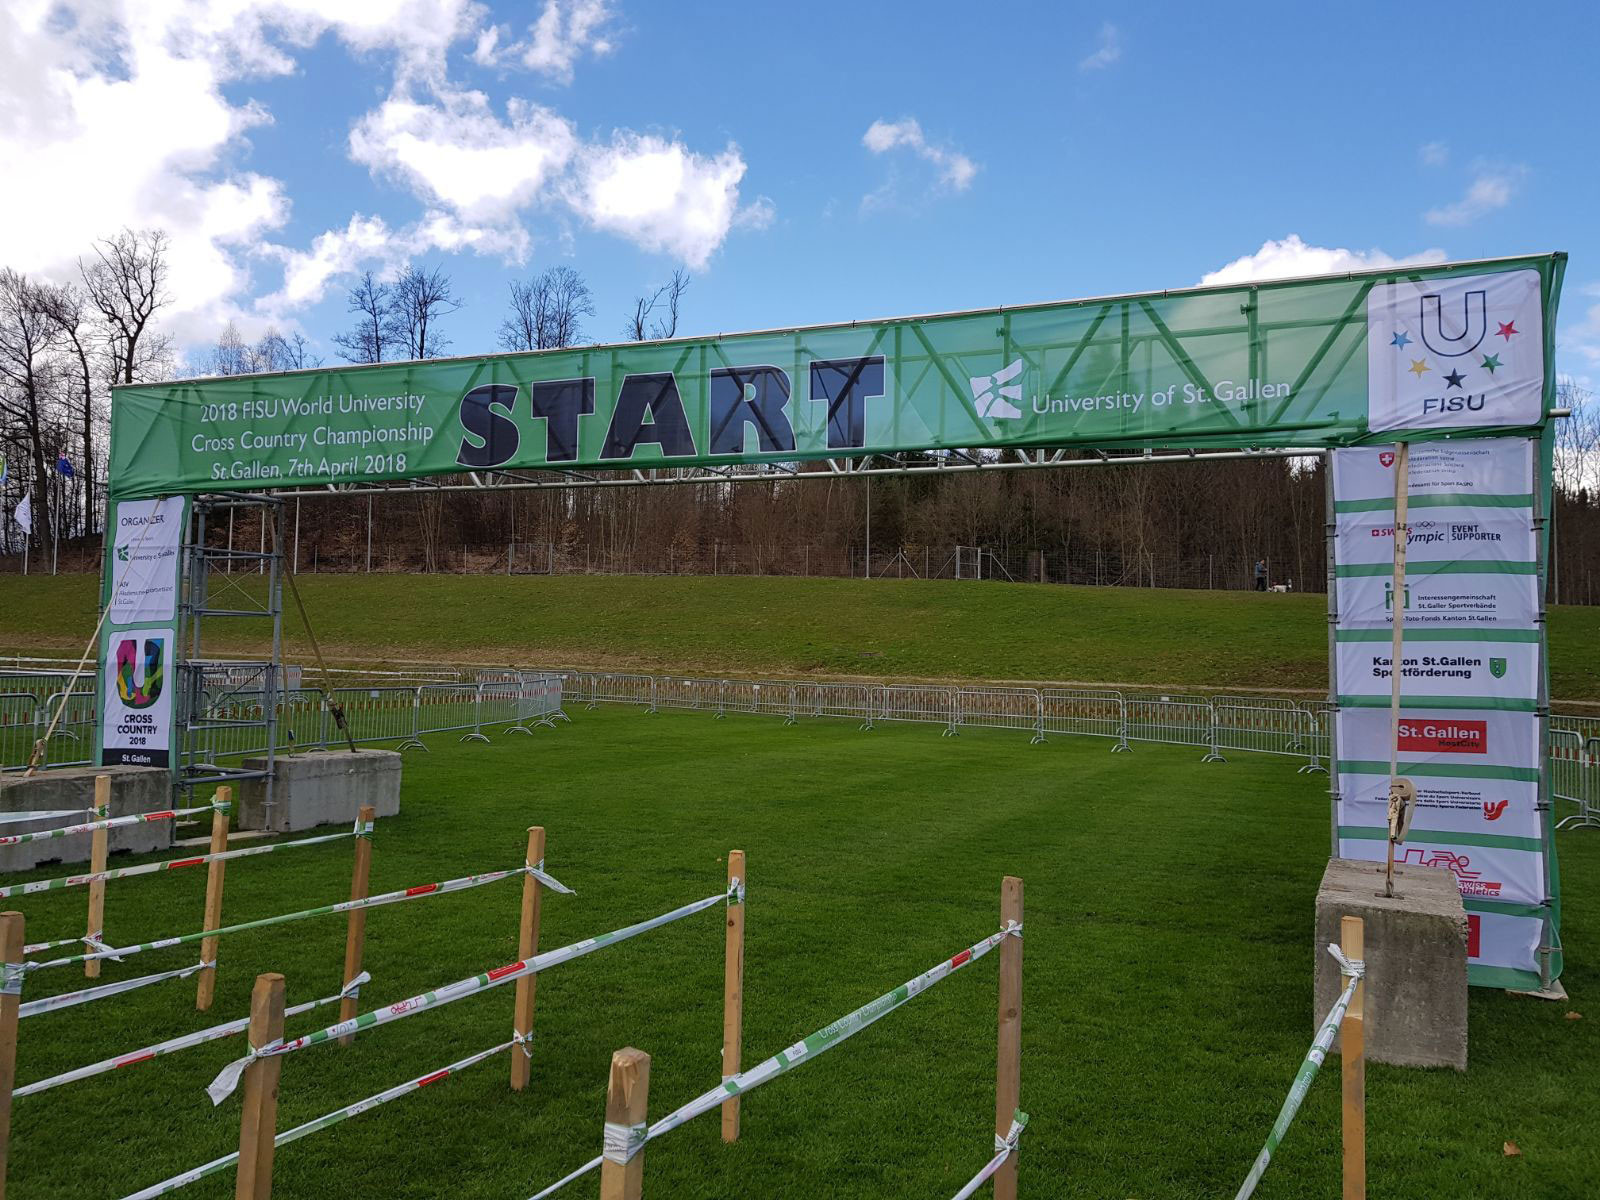 Testing St Gallen course awaits FISU World University Cross-Country Championship field as event returns to Switzerland